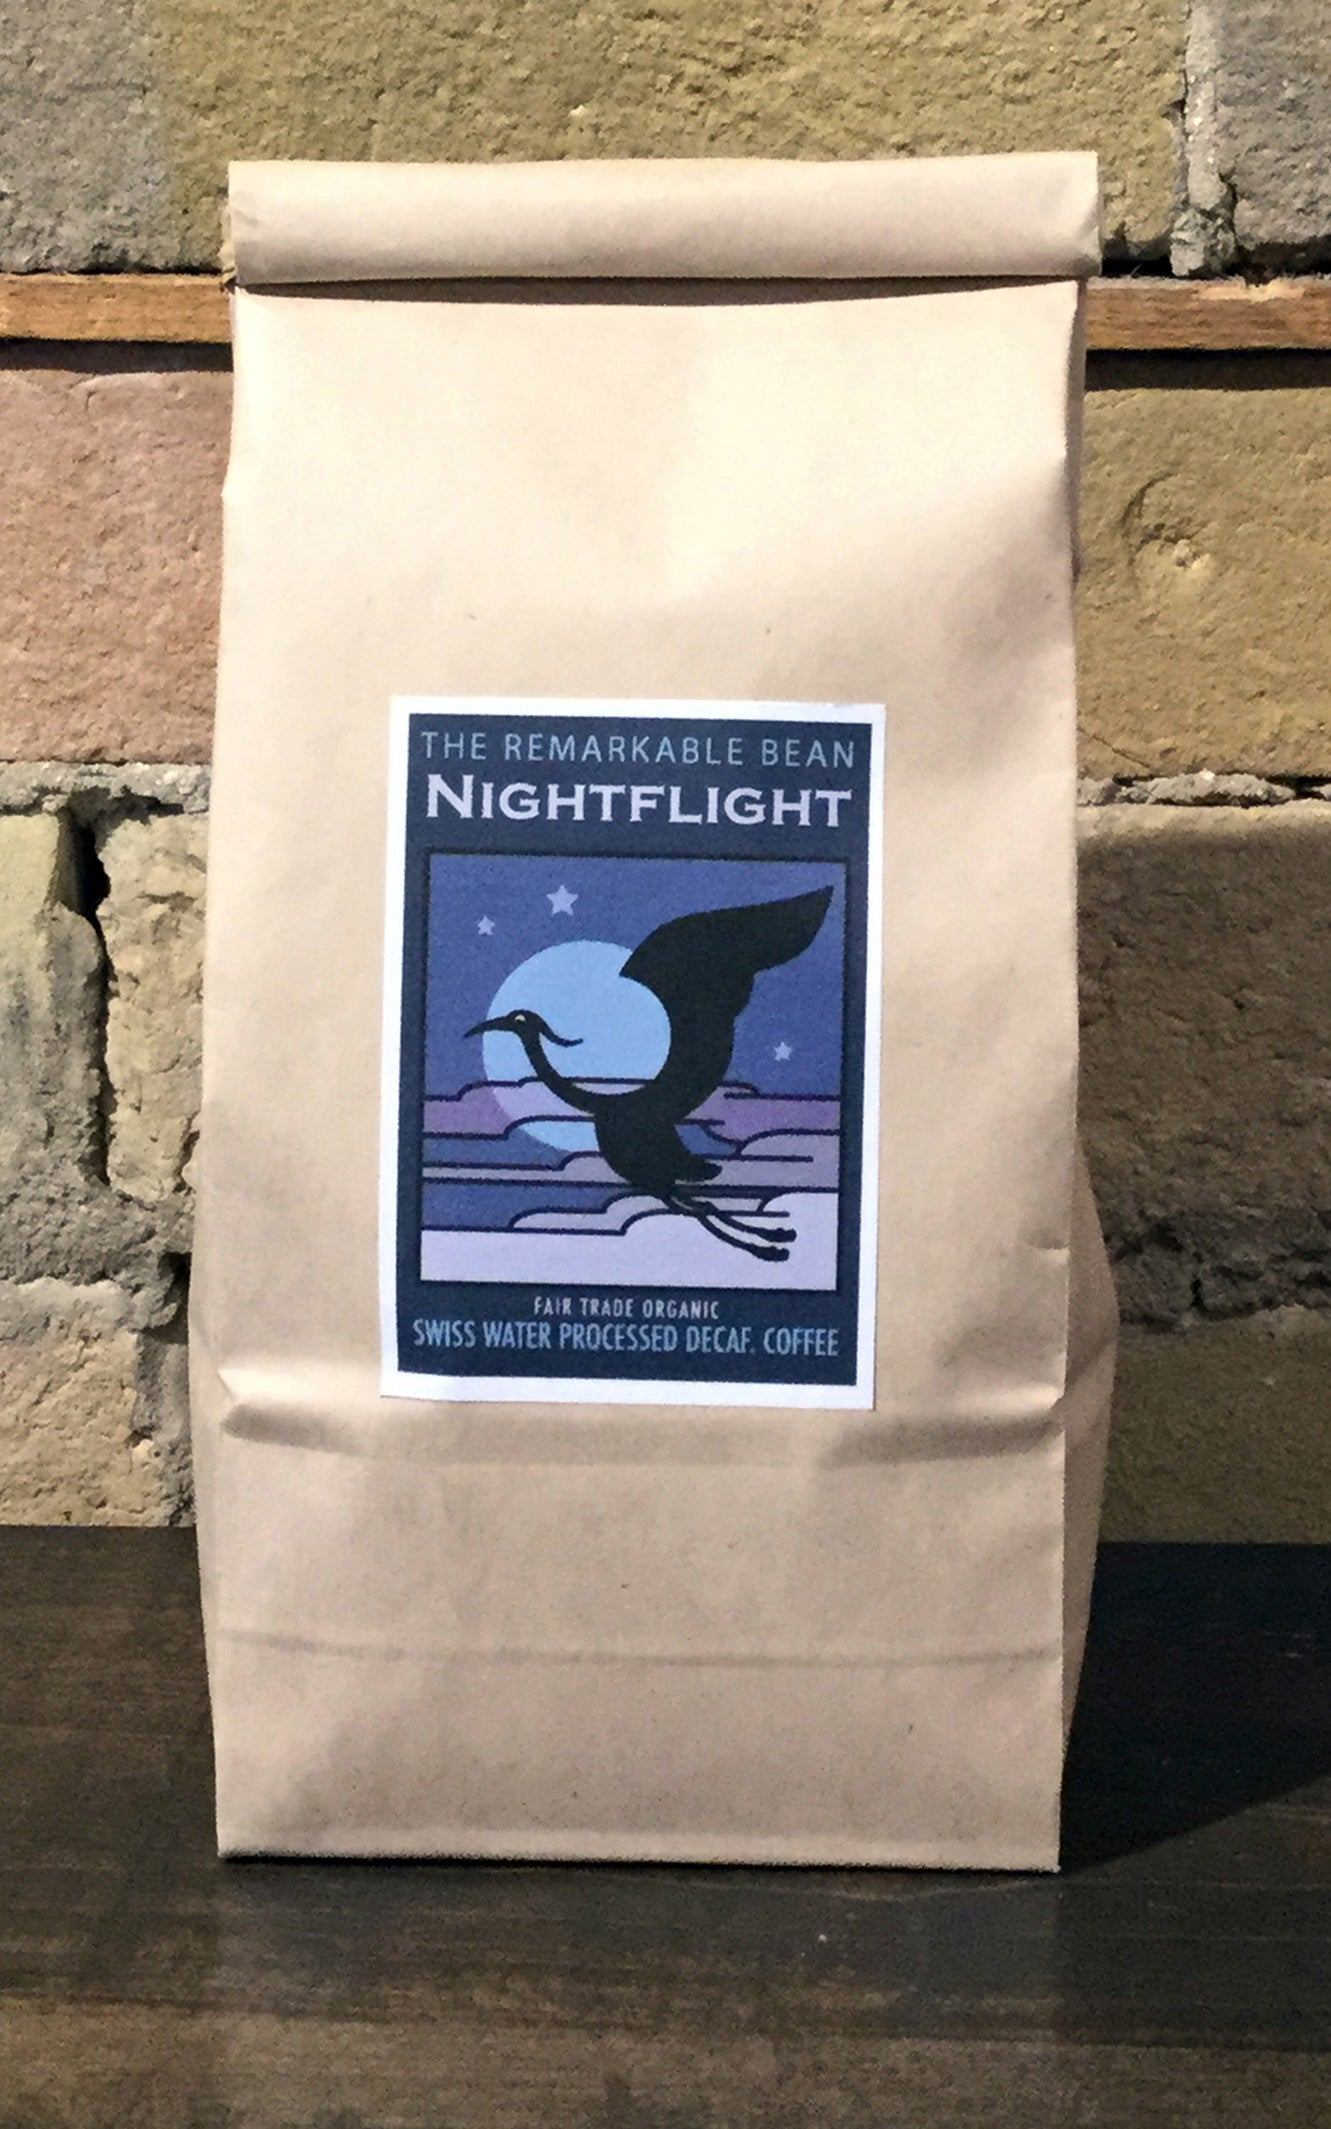 Nightflight Decaf. Fair Trade Organic Coffee 454grams